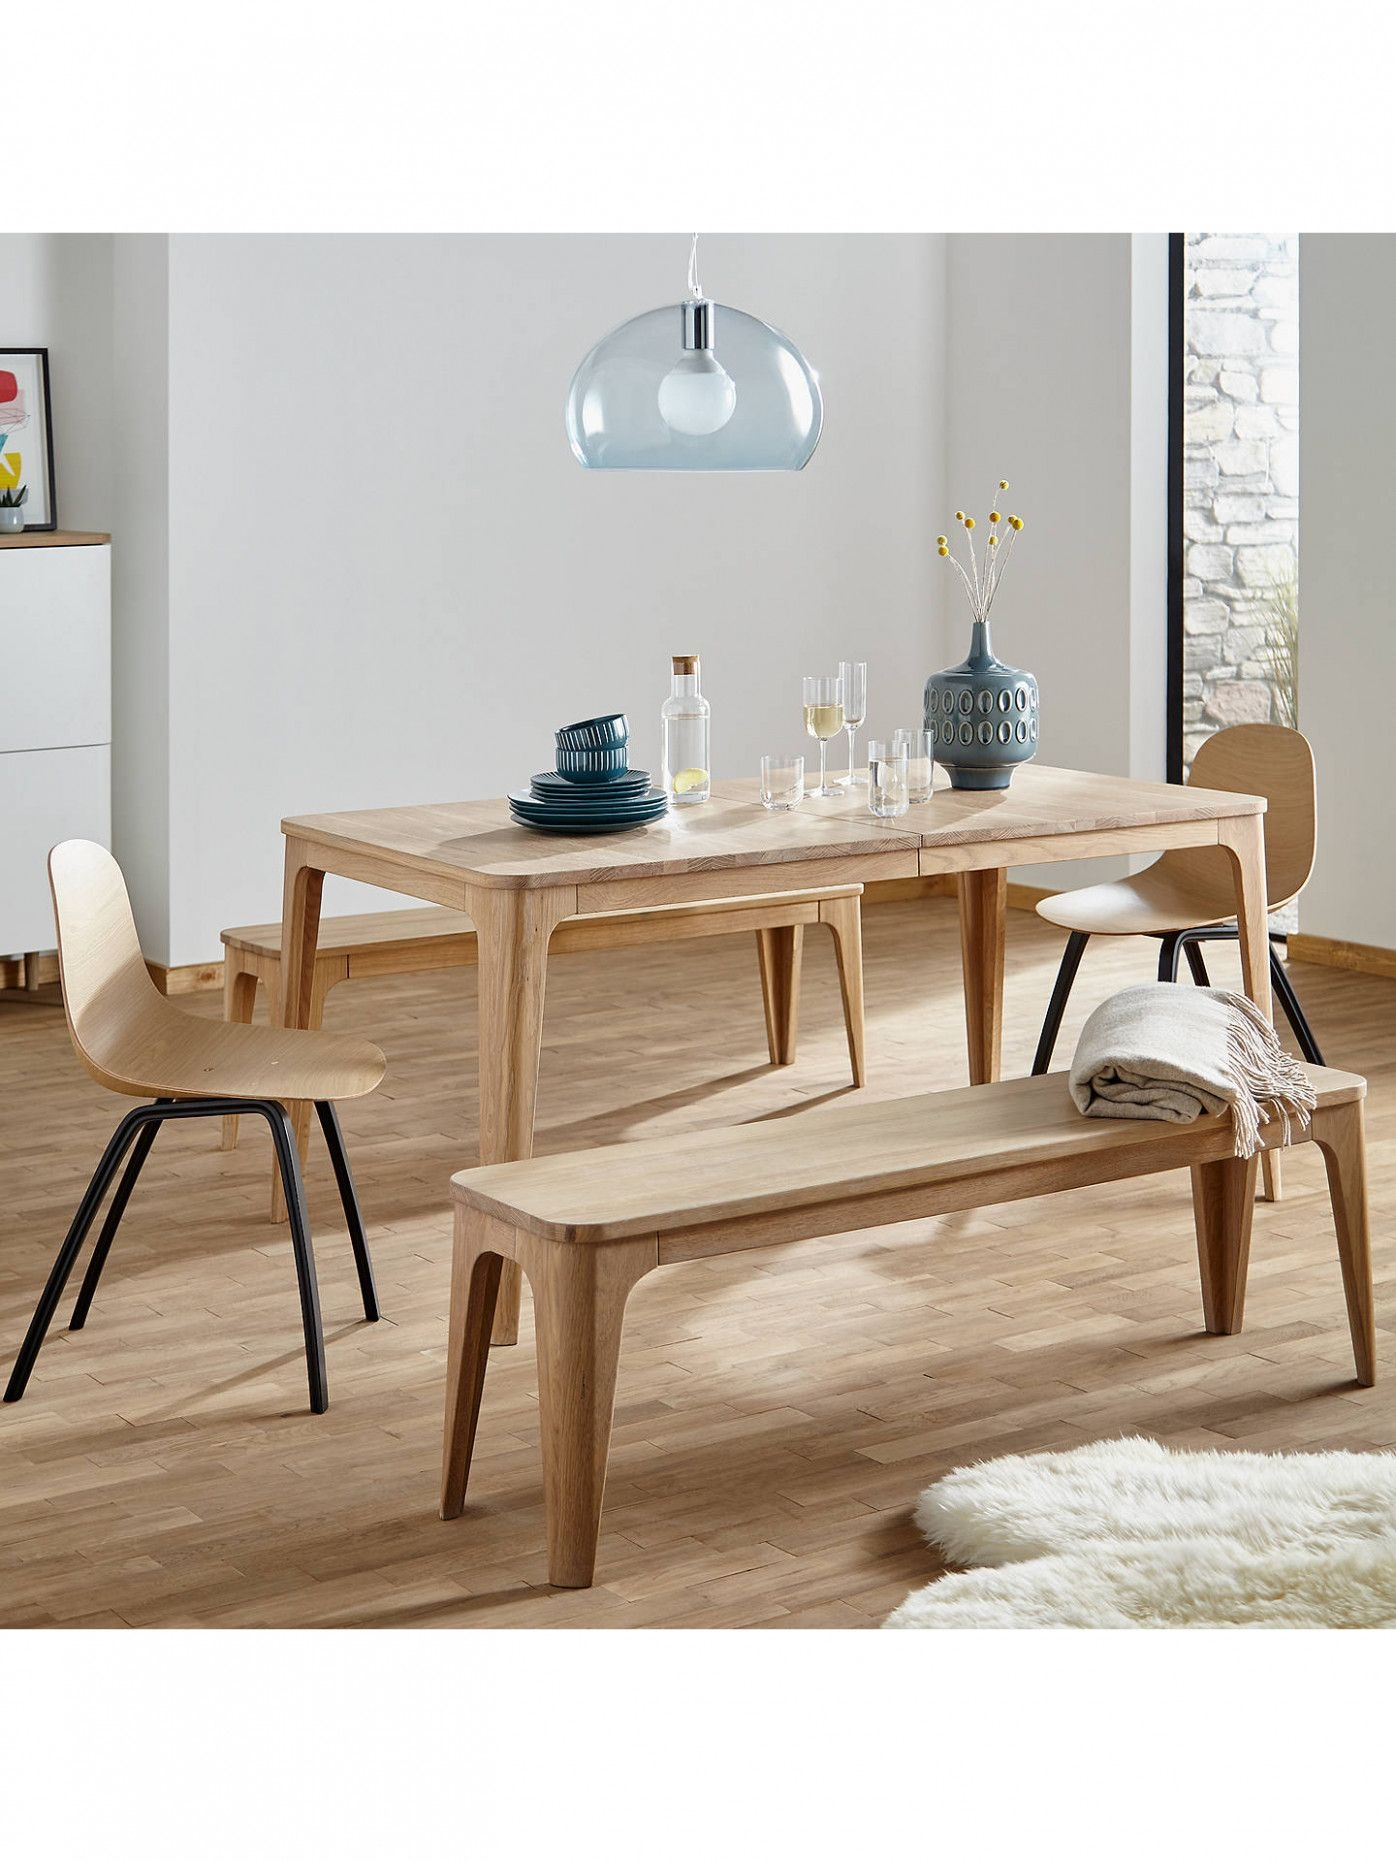 11 John Lewis Kitchen Table And Chair